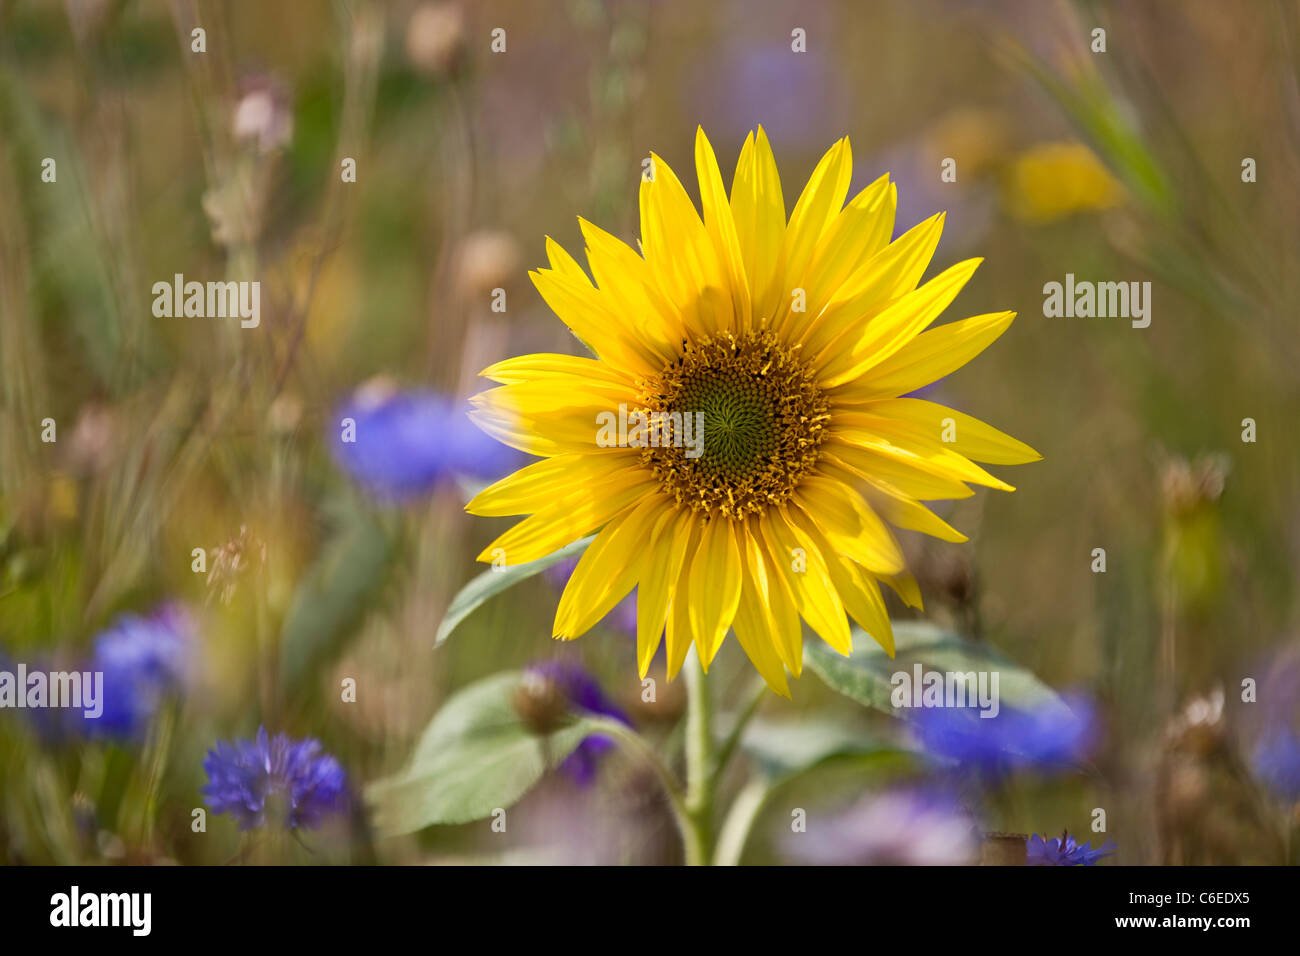 A sunflower growing in a meadow of wildflowers - Stock Image